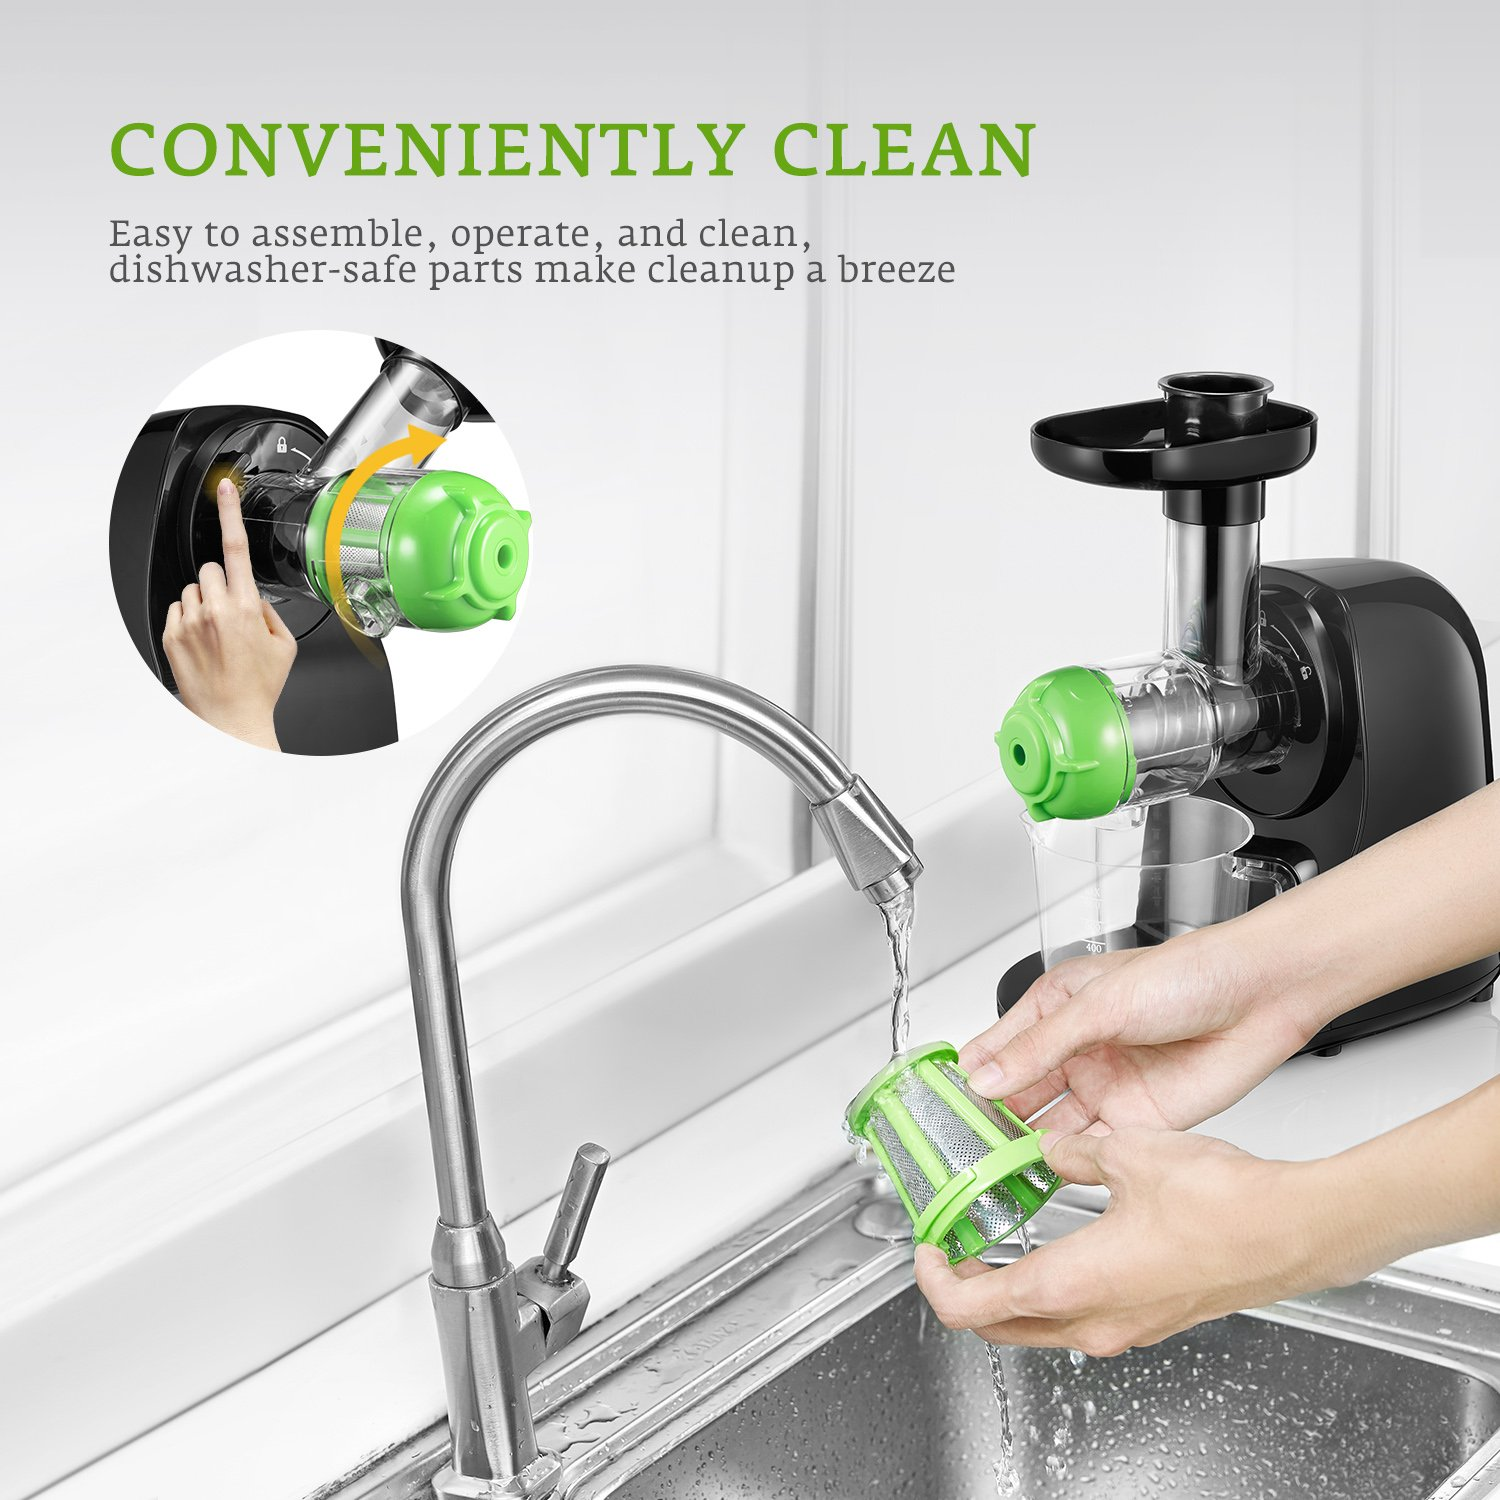 Juicer Masticating Slow Juicer Extractor, Aicok Juice Quiet Motor & Reverse Function, BPA Free, Cold Press Juicer Easy to Clean with Brush, Juice Machine Recipes for Vegetables and Fruits by AICOK (Image #6)